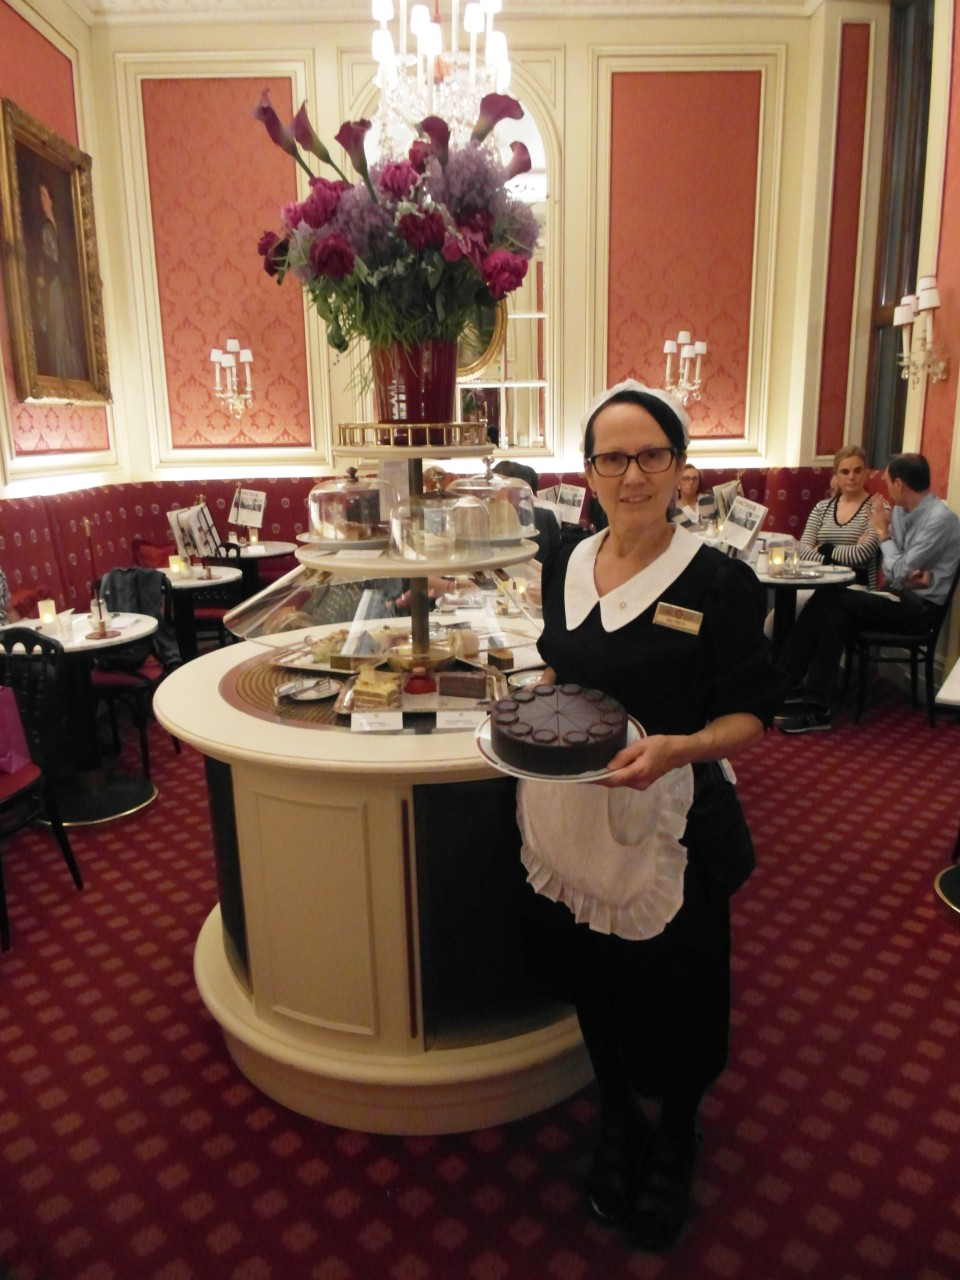 Vienna cafes and coffee houses : Cafe Sacher